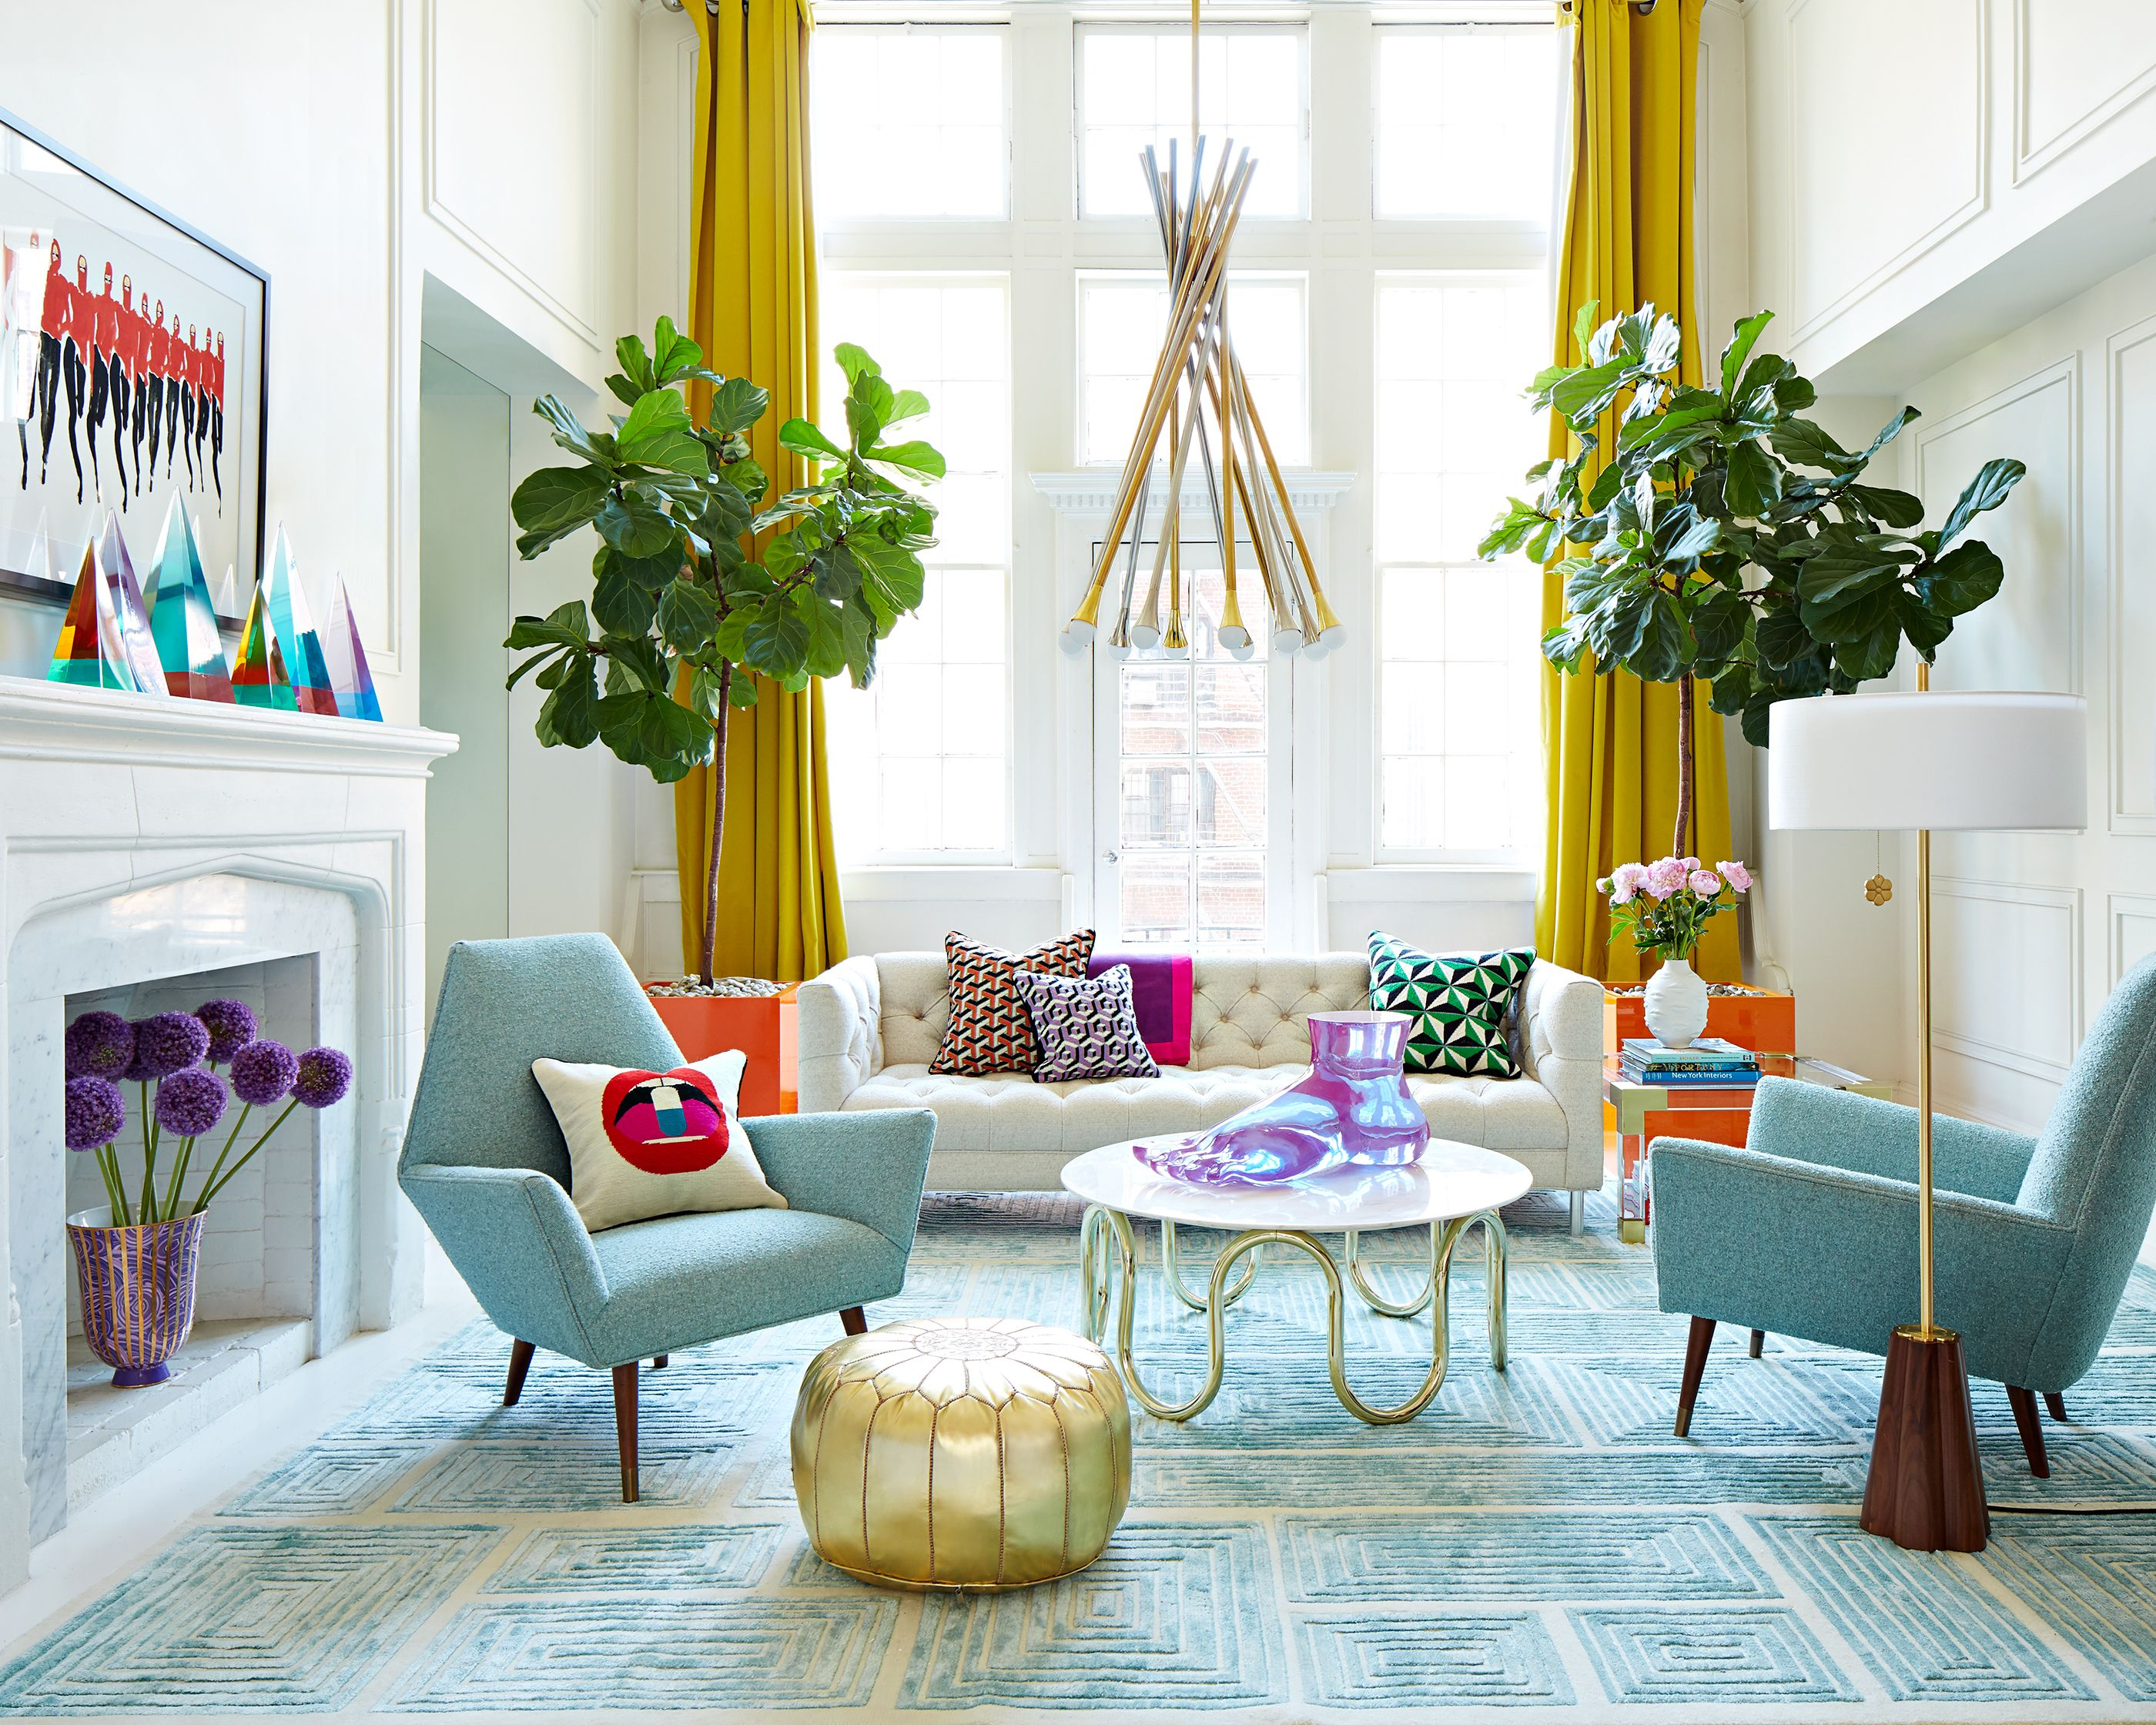 Jonathan Adler Creates Modern American Glamour In This Fab Living Room From  Their Fall 2016 Catalog.